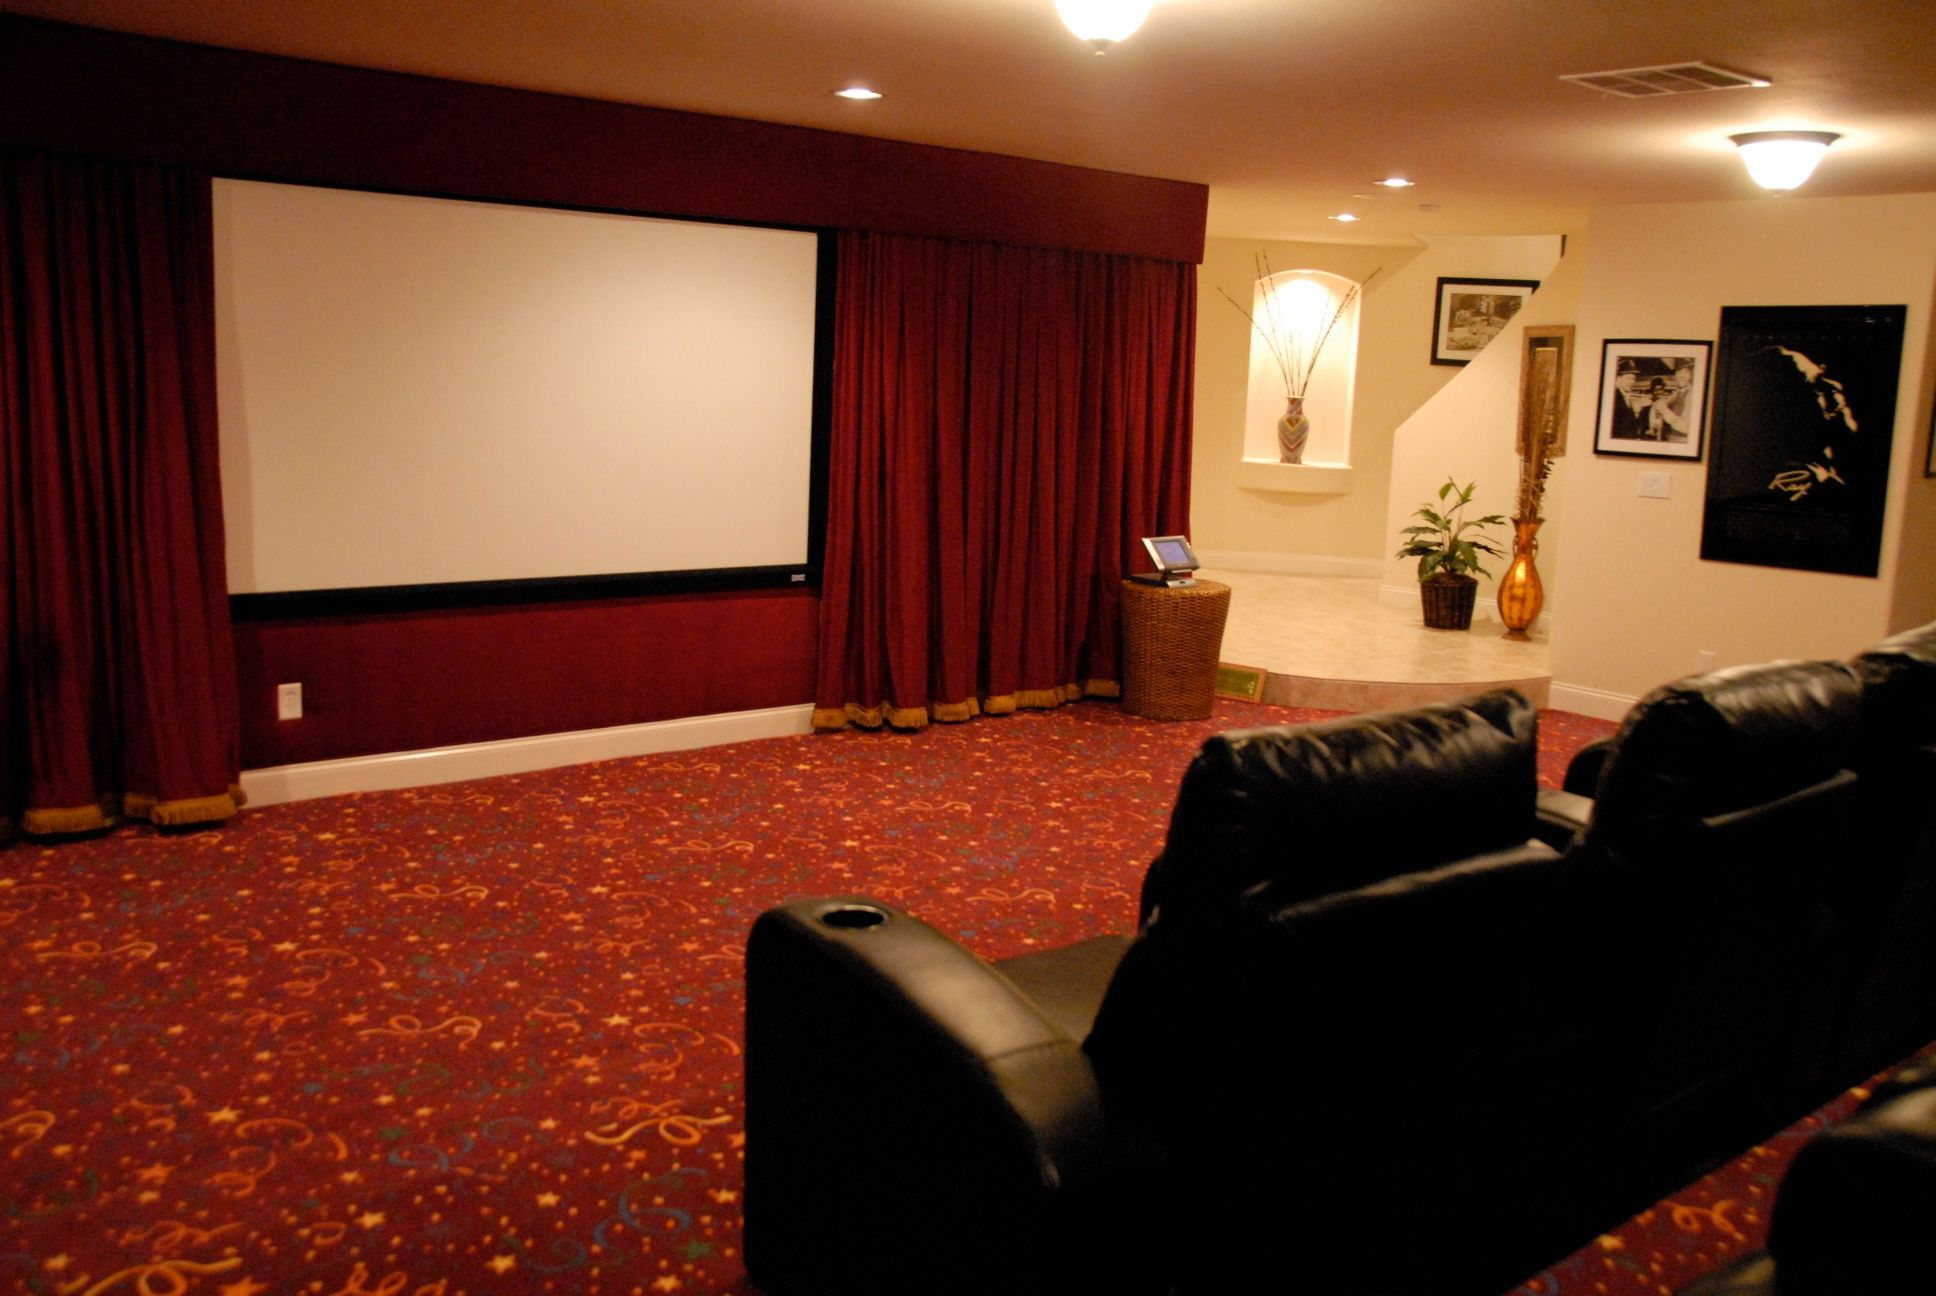 Movie Rooms With Curtains Decorations Sophisticated Home Movie Theater Rooms For Inspirations